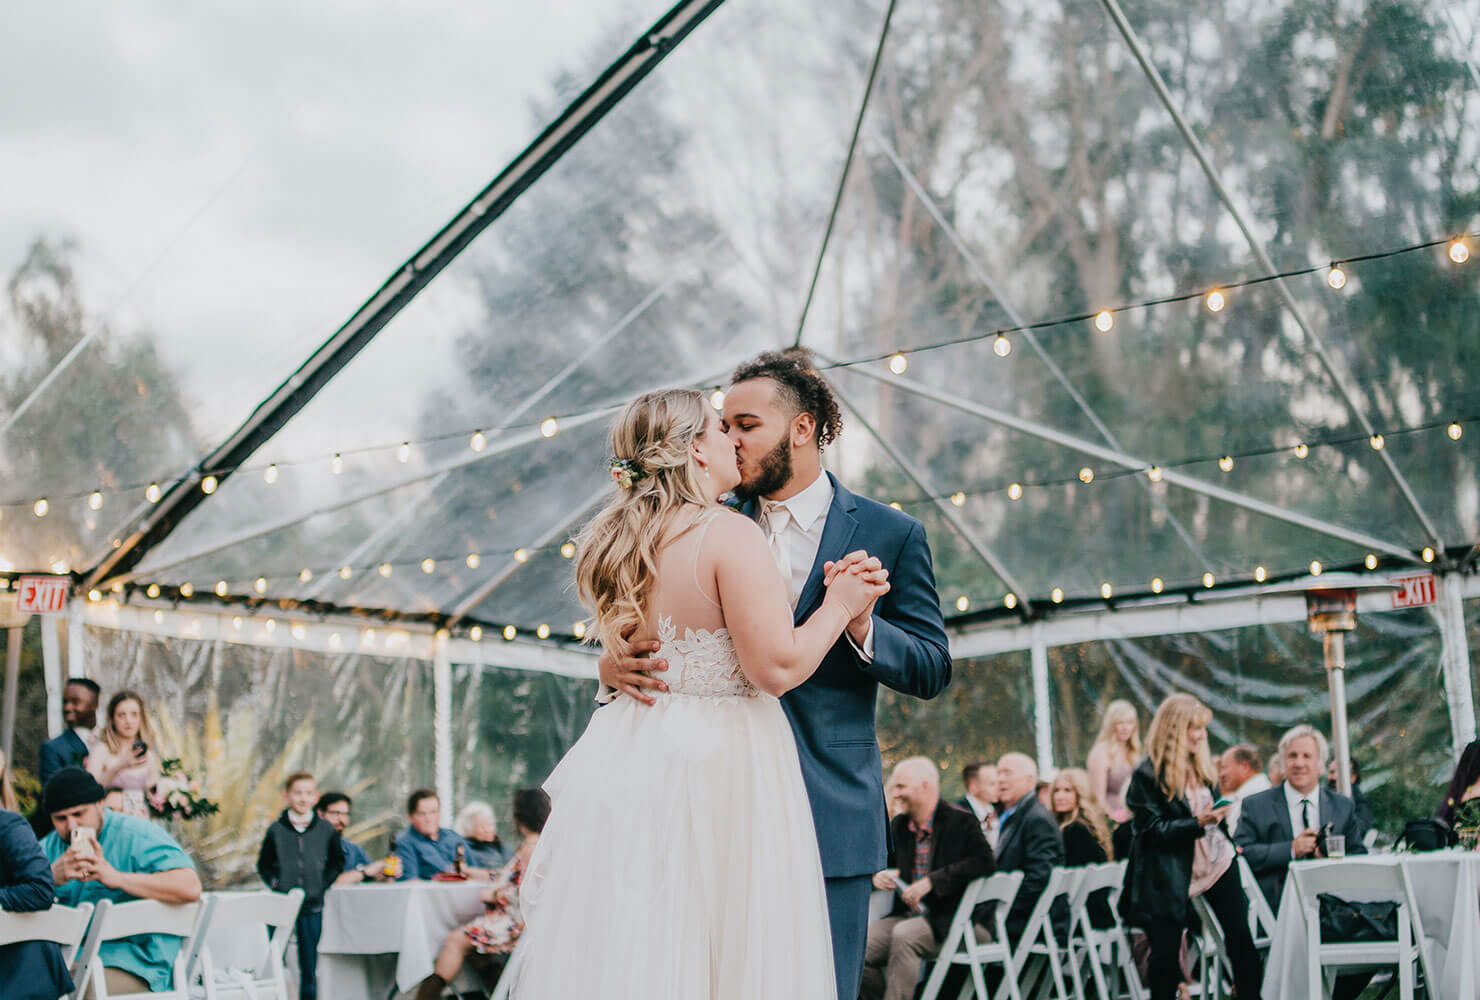 Couple during their first dance under a clear tent surrounded by guests.